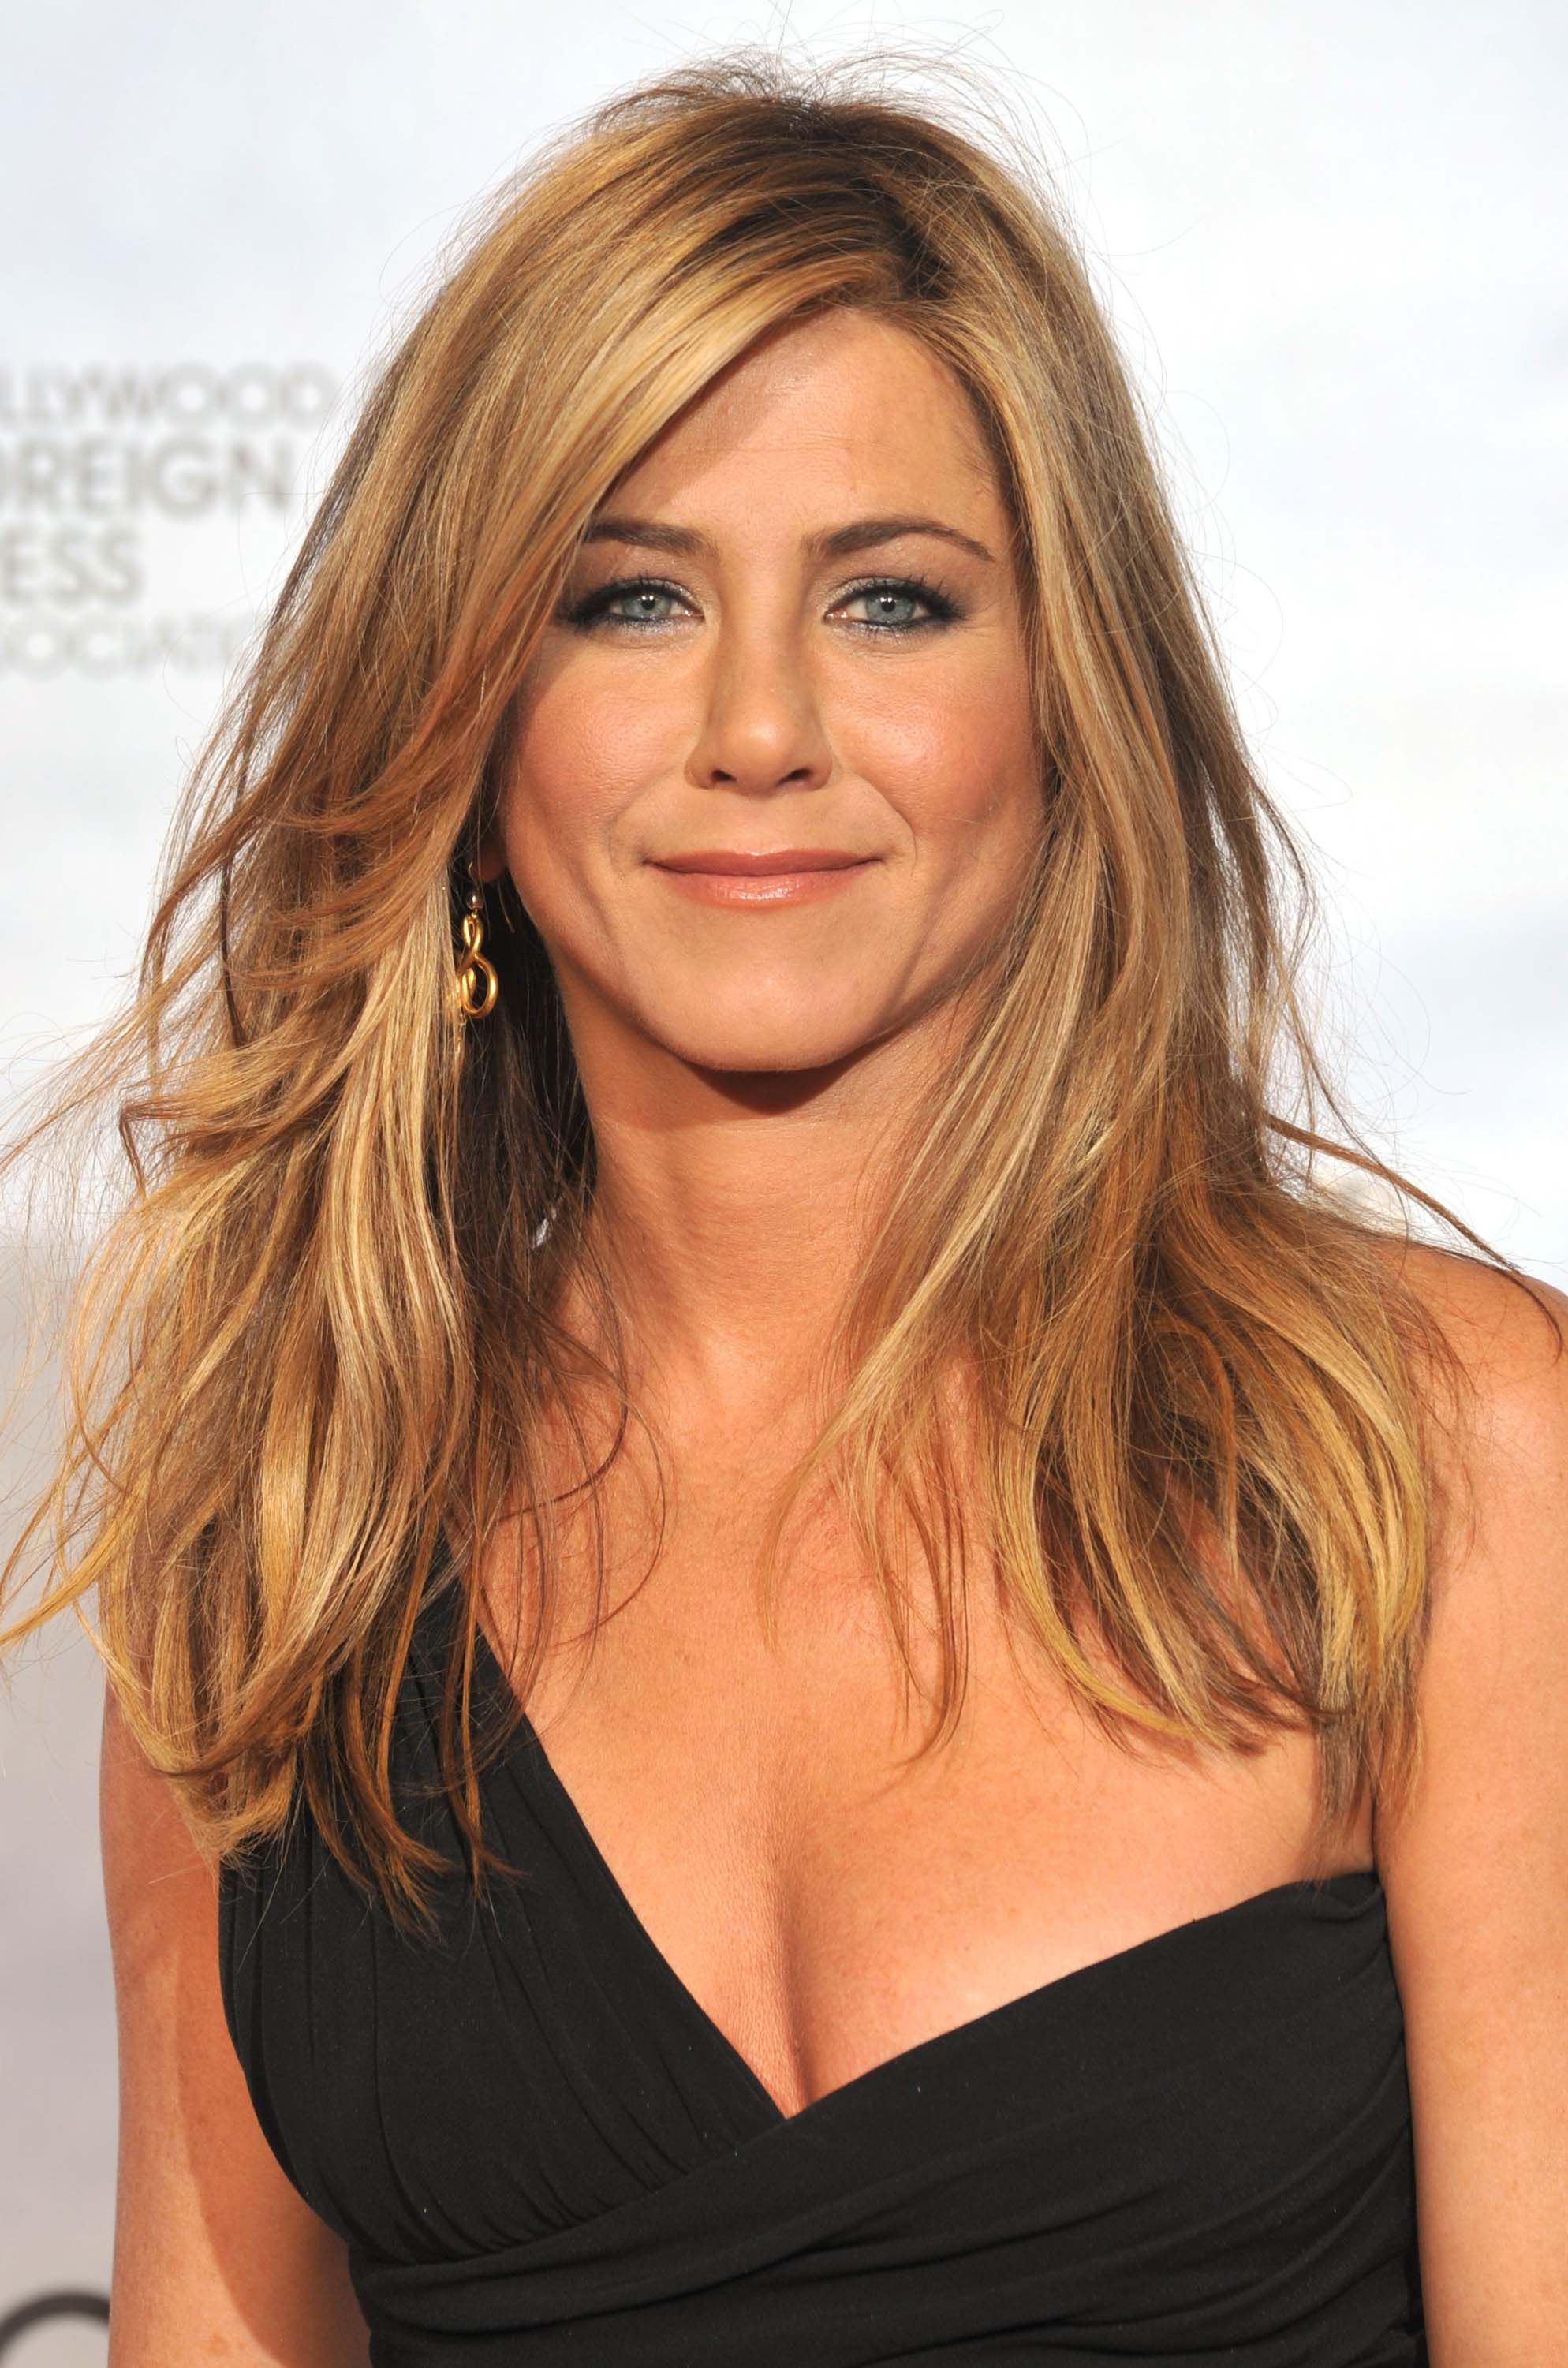 30 musttry hairstyles for women over 40 haircut